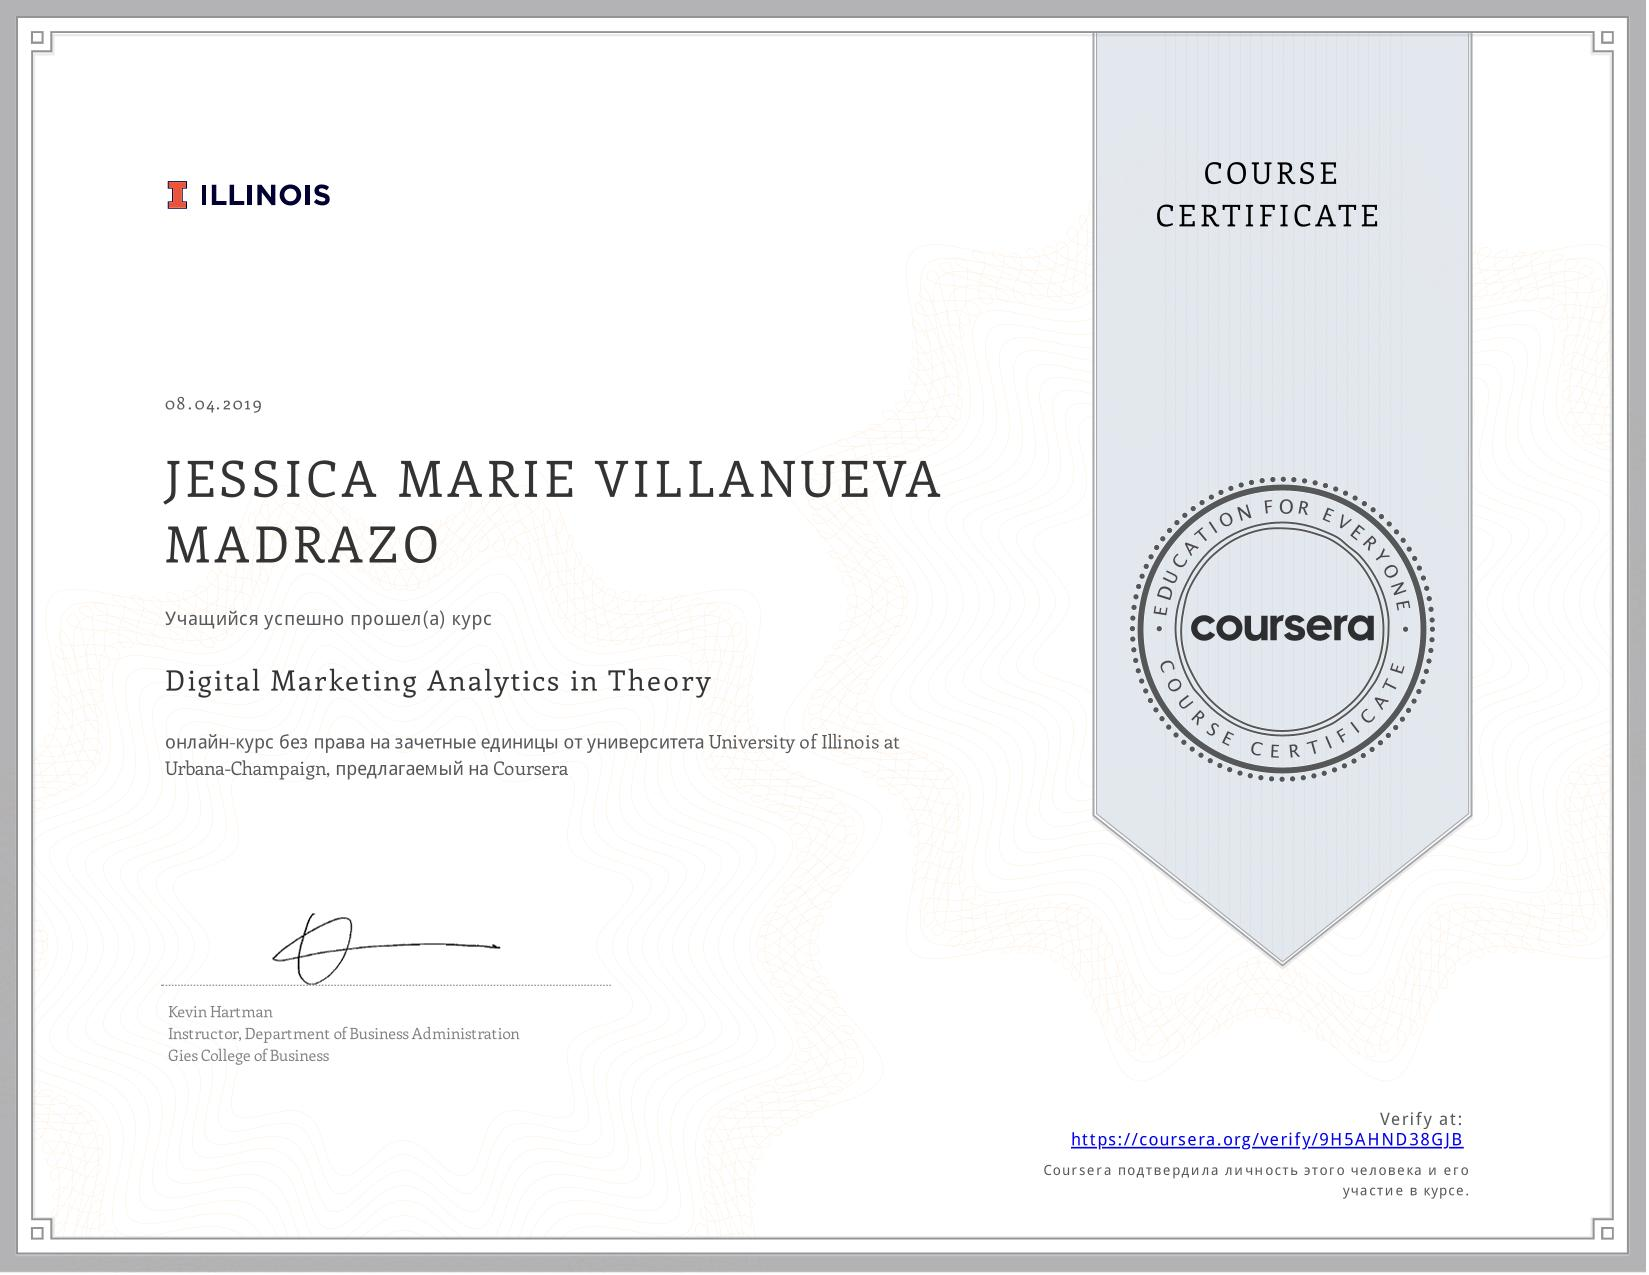 View certificate for JESSICA MARIE VILLANUEVA  MADRAZO, Digital Analytics for Marketing Professionals: Marketing Analytics in Theory, an online non-credit course authorized by University of Illinois at Urbana-Champaign and offered through Coursera